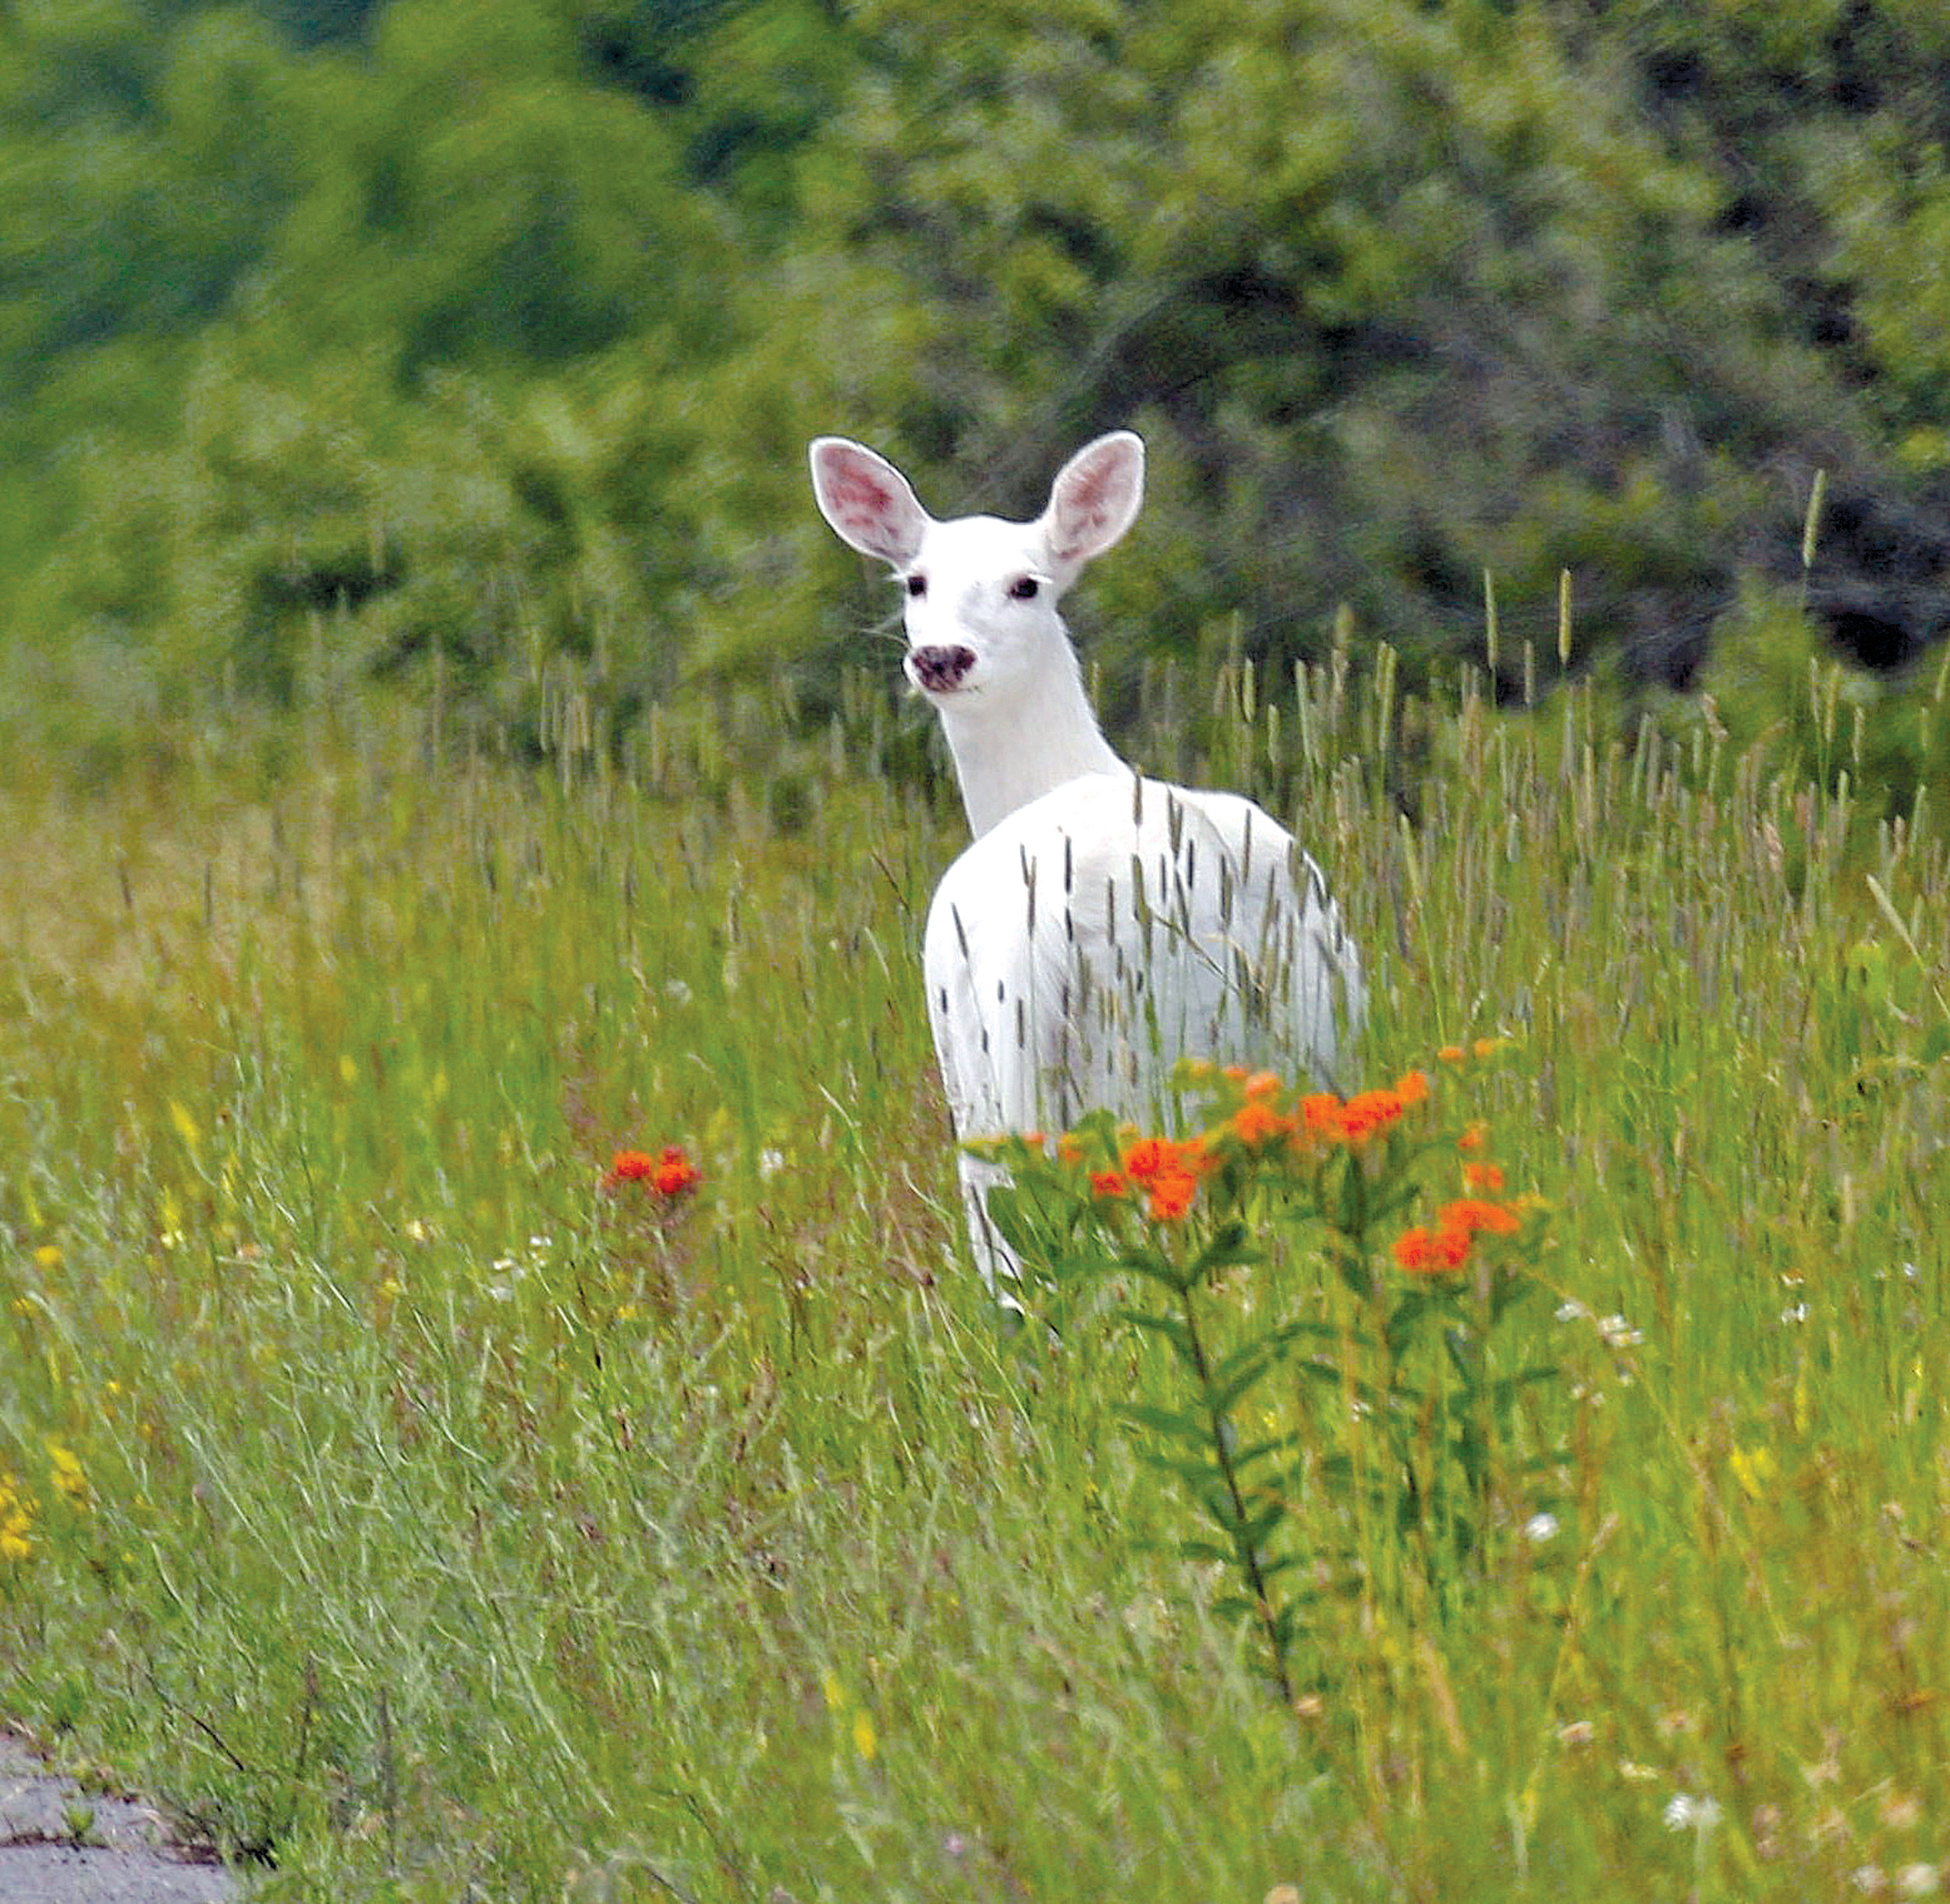 A white deer stands in a field June 28 with orange butterfly weed at the Seneca Army Depot in upstate New York. Public bus tours to view a rare herd of ghostly white deer at a former World War II Army weapons depot are slated to begin fall 2017. The white deer roaming the 7,000-acre Seneca Army Depot in the Finger Lakes have been off-limits to the public for decades, save for glimpses through the surrounding chain-link fence.